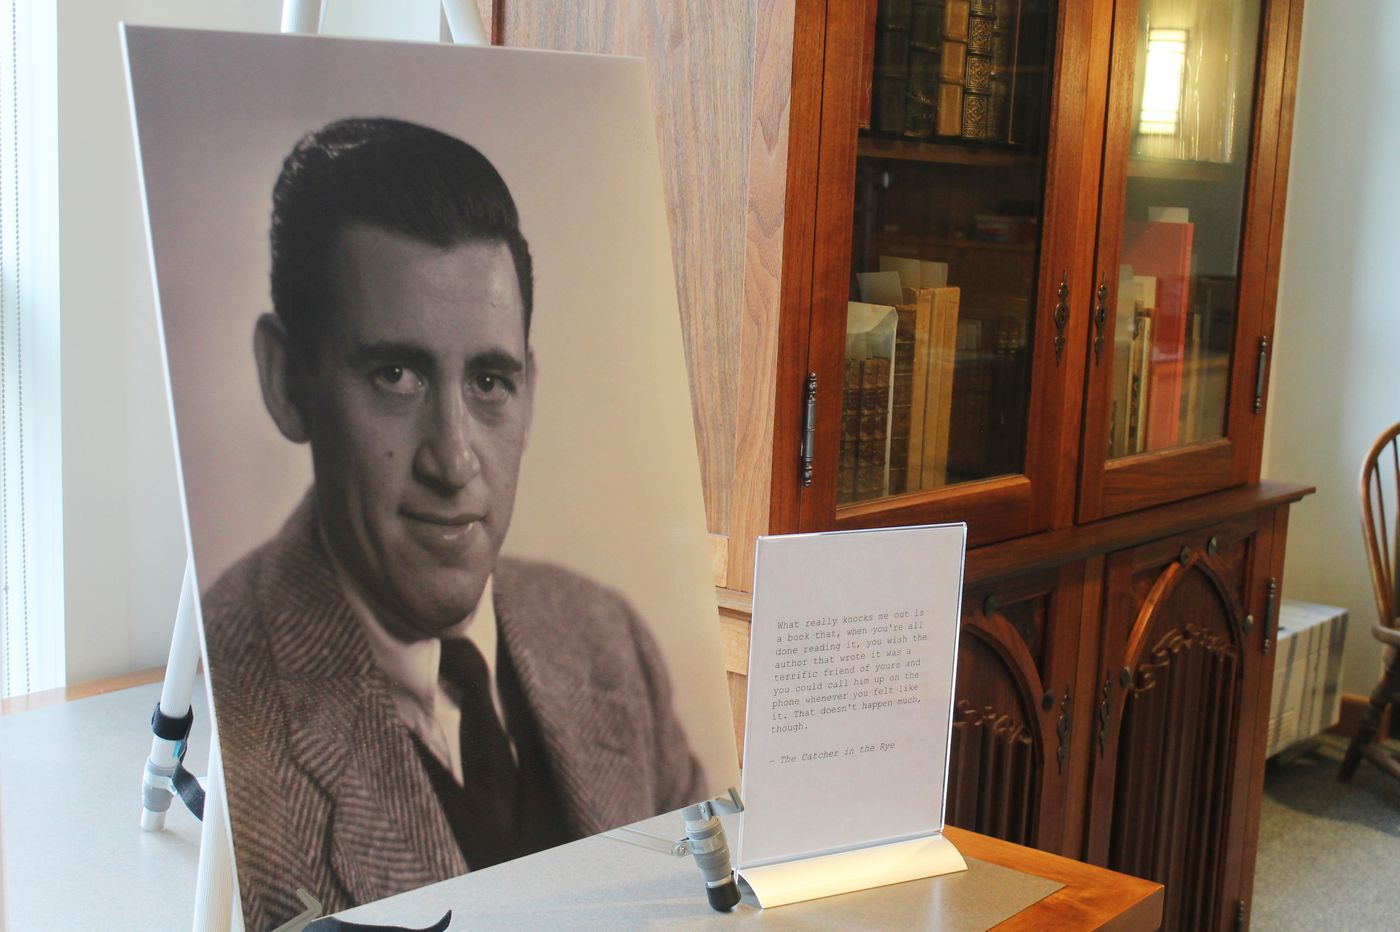 Unseen J.D. Salinger photos shot for 'Catcher' on display